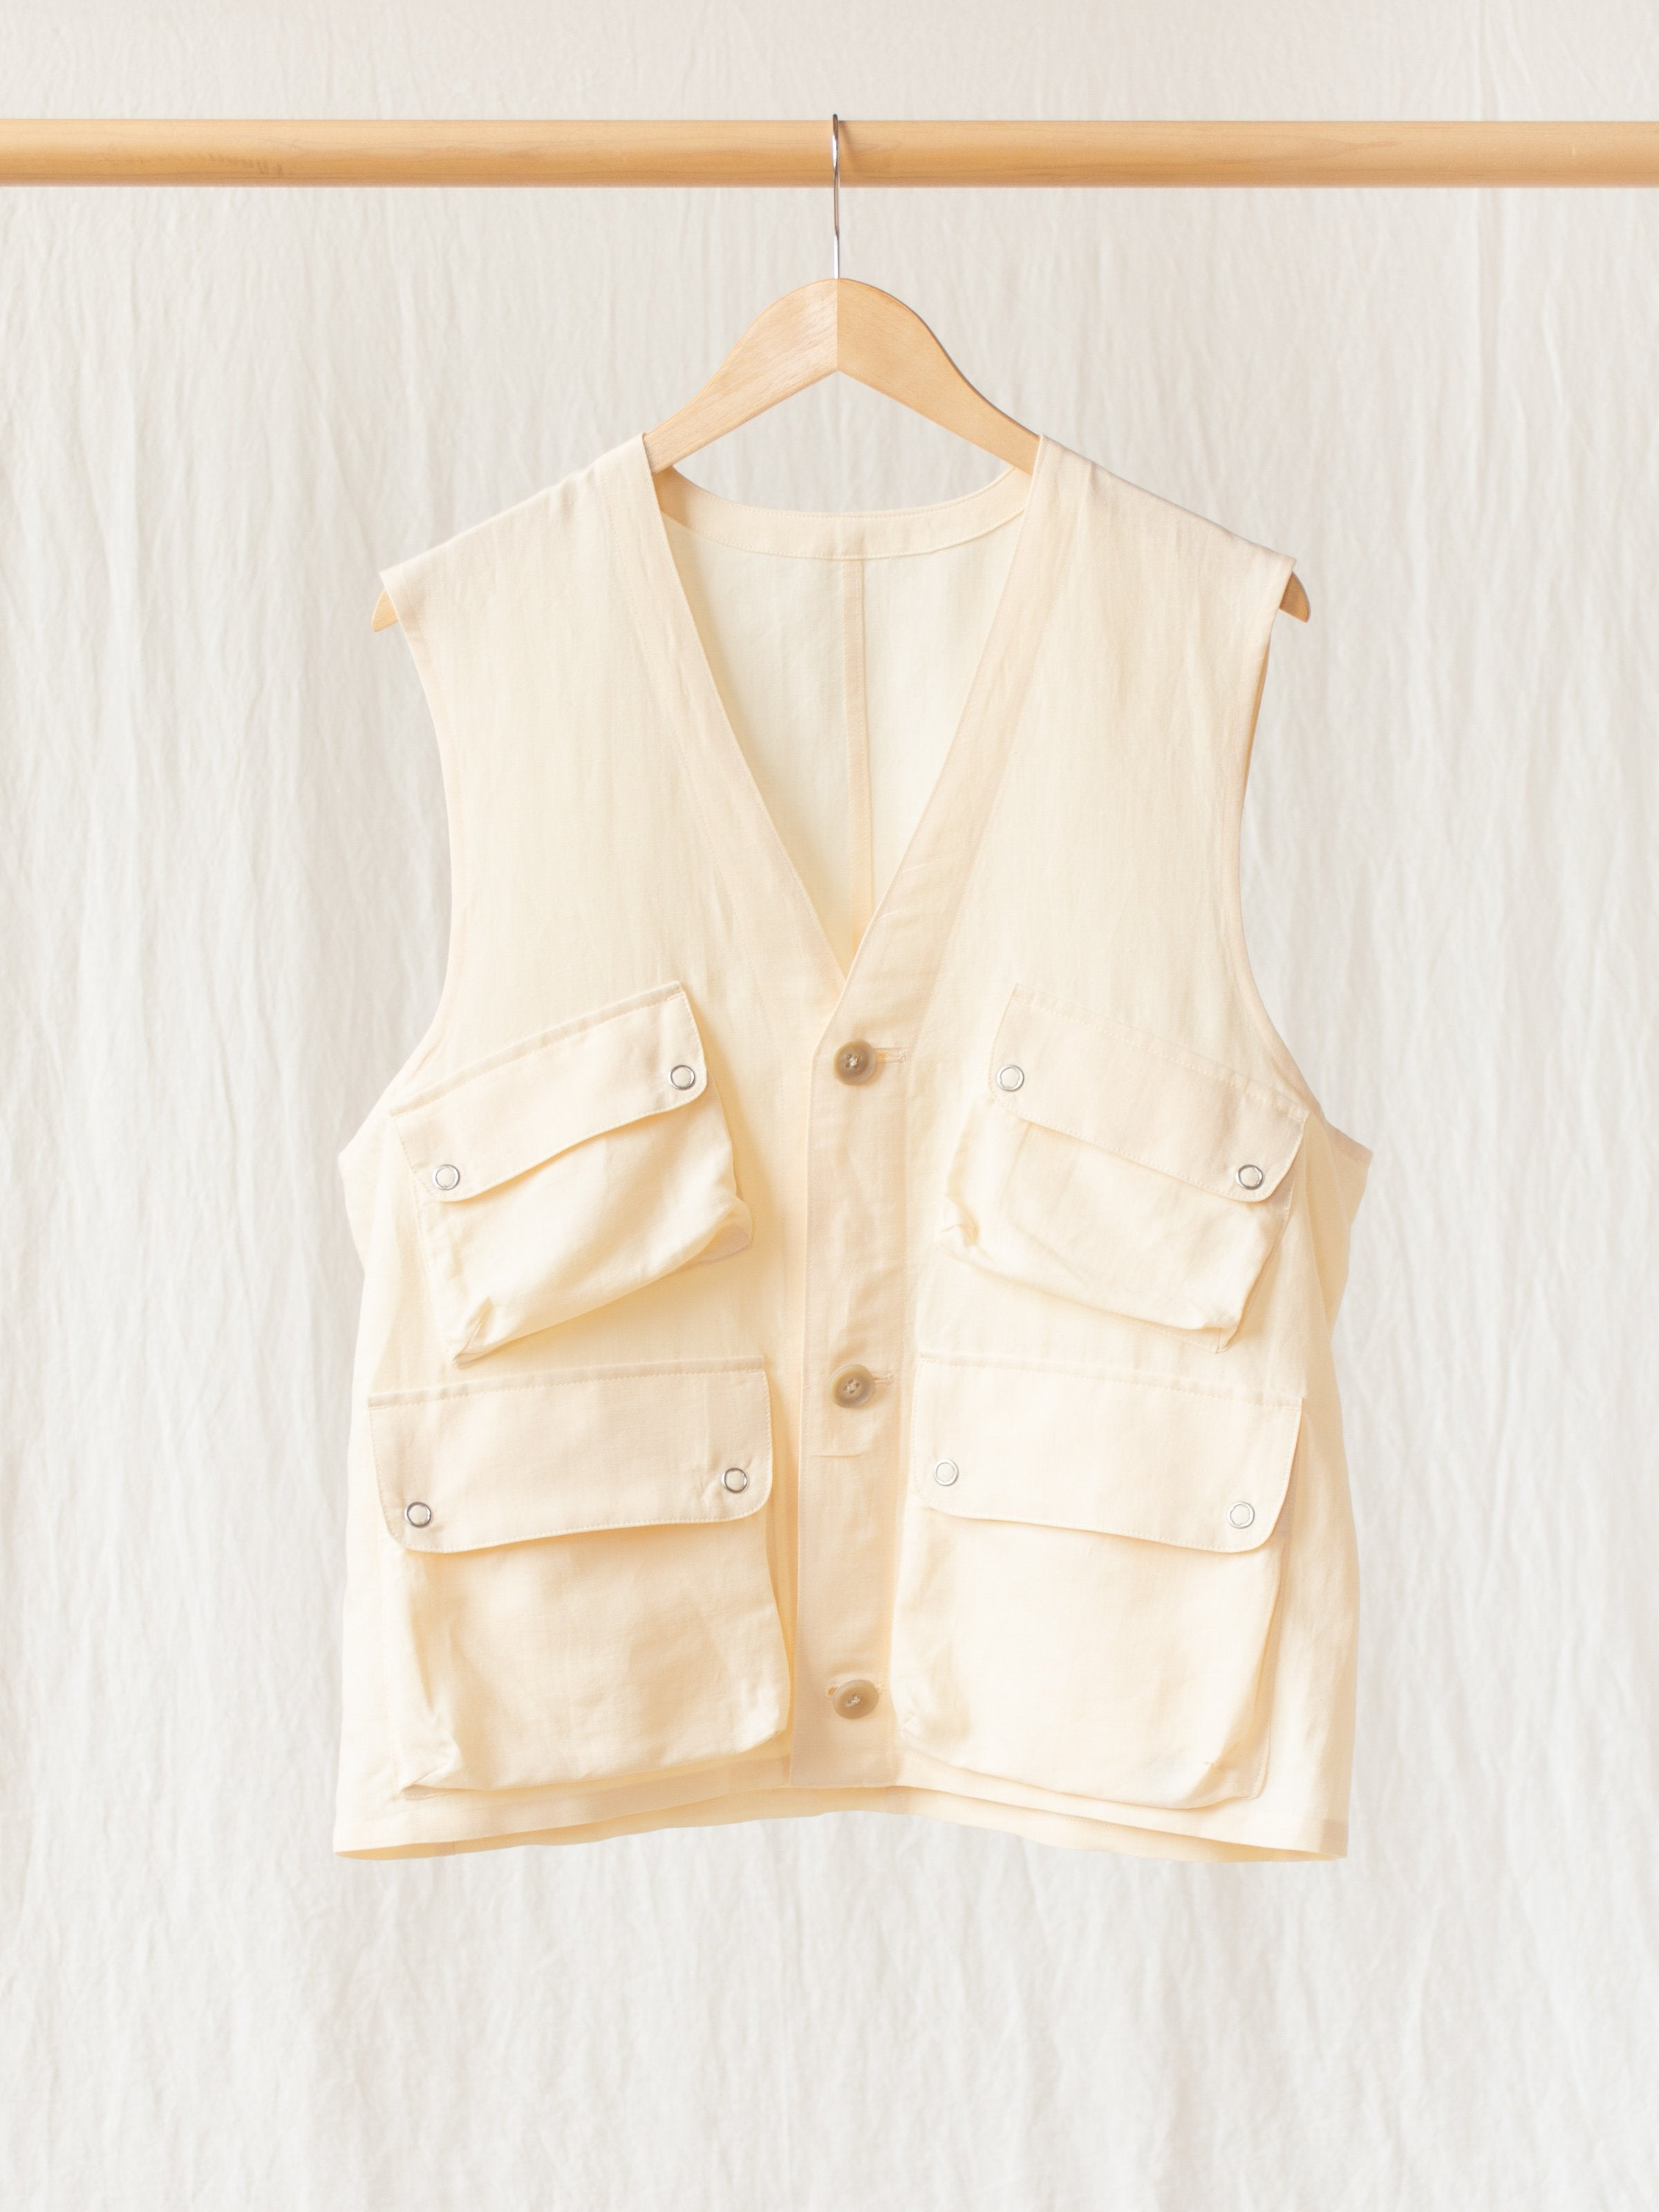 Namu Shop - Phlannel Linen Cotton Wool Twill Military Survival Vest